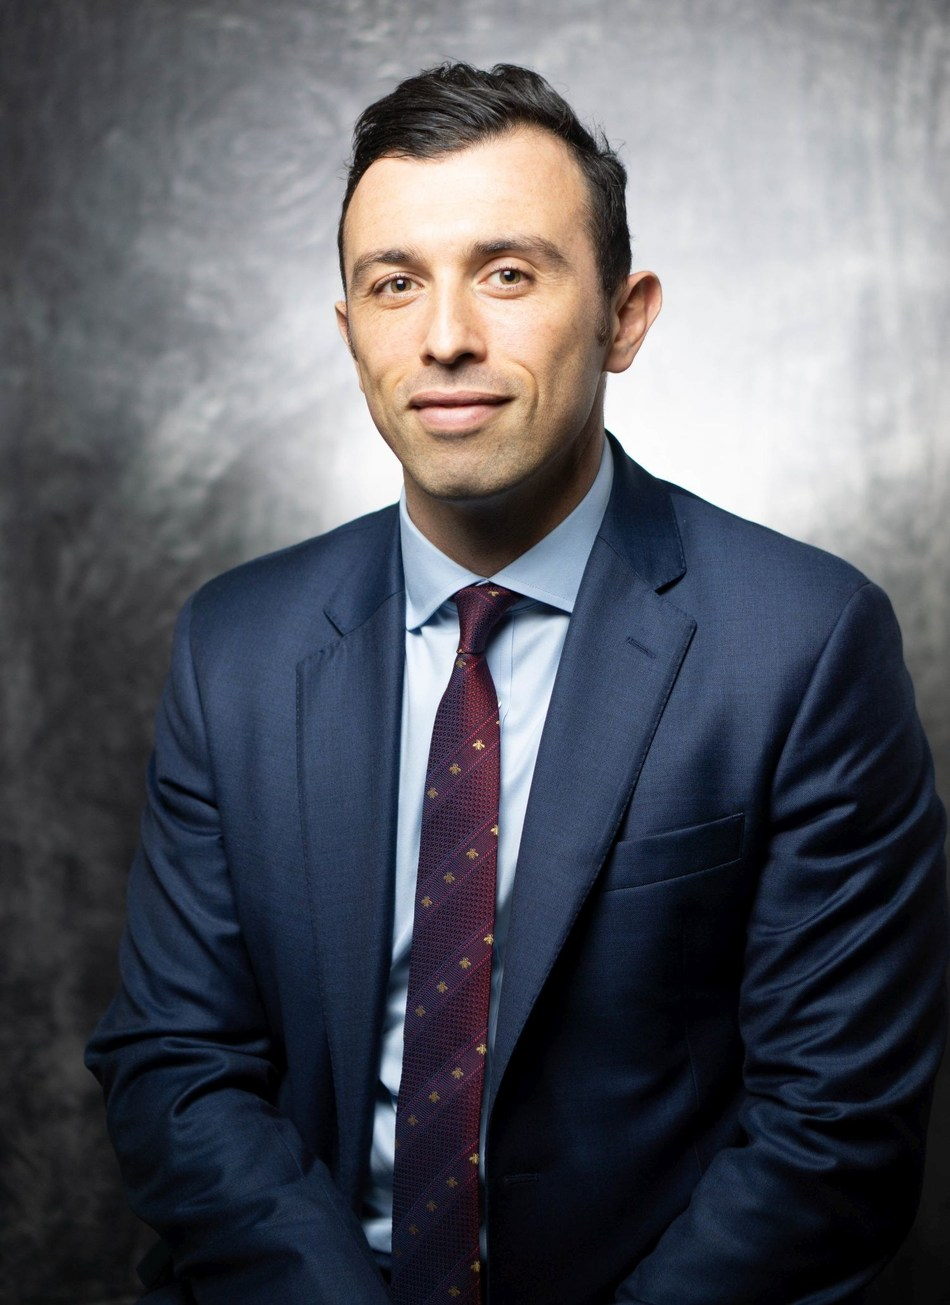 Ata Khatib, New CEO Lockton MENA Ltd.